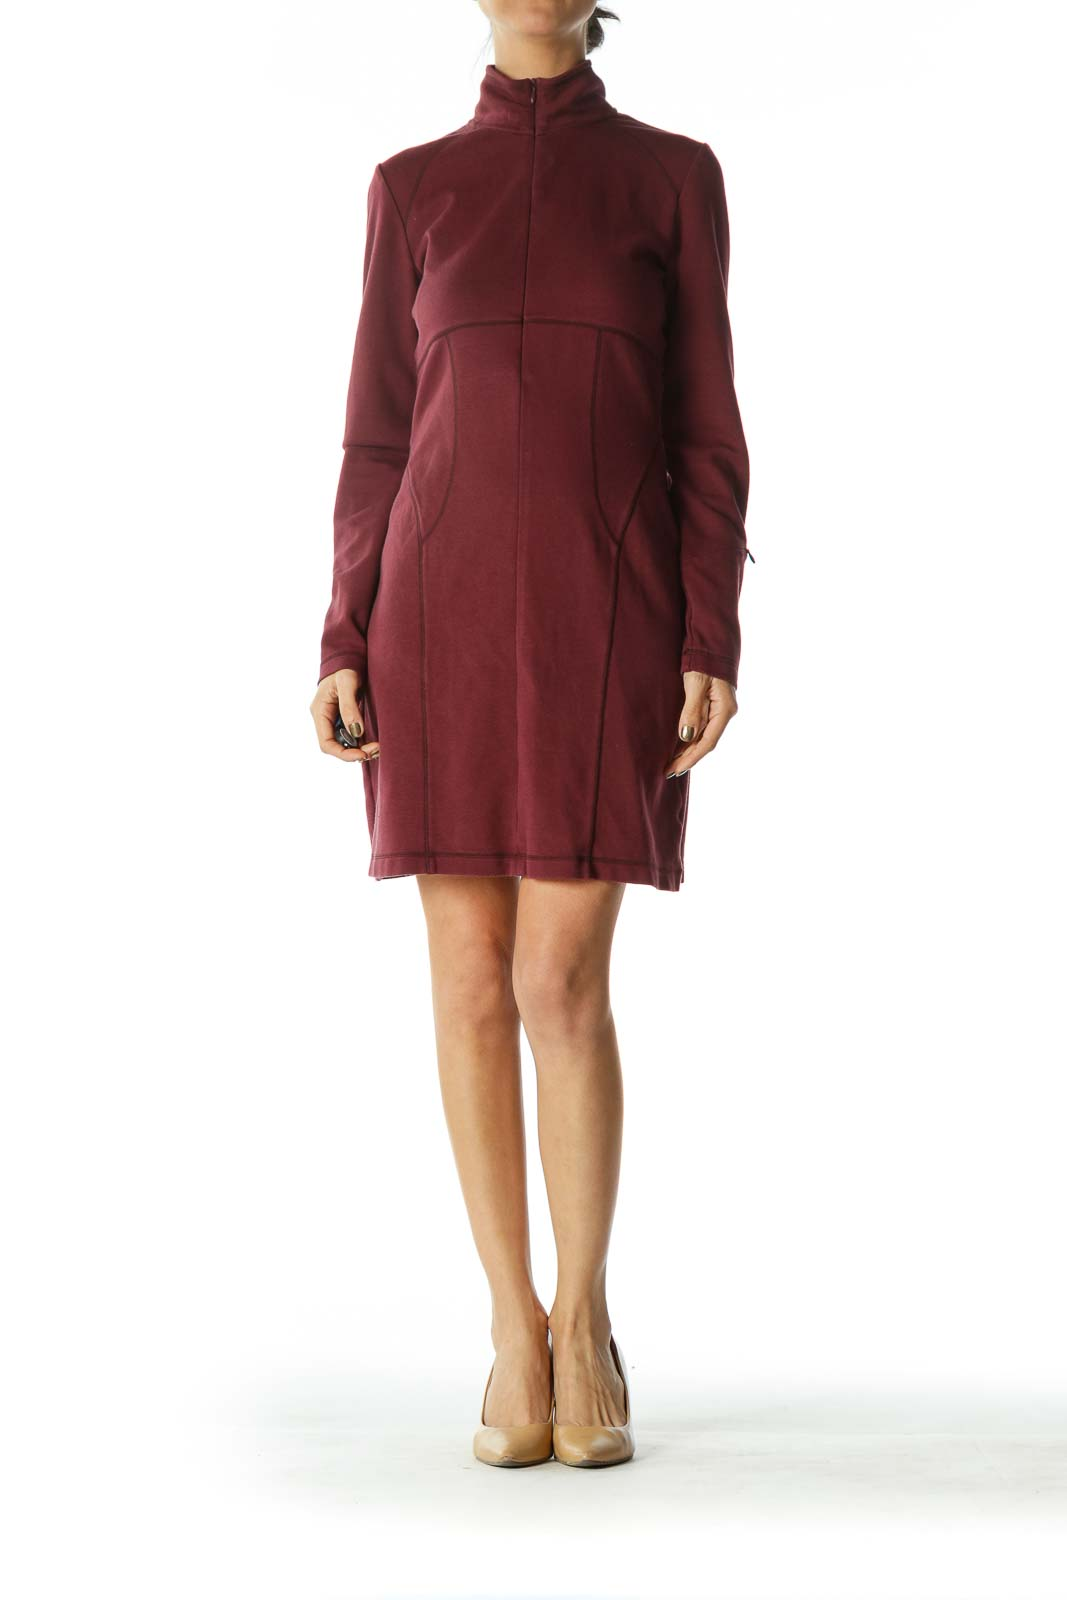 Burgundy Long Sleeve Athletic Dress